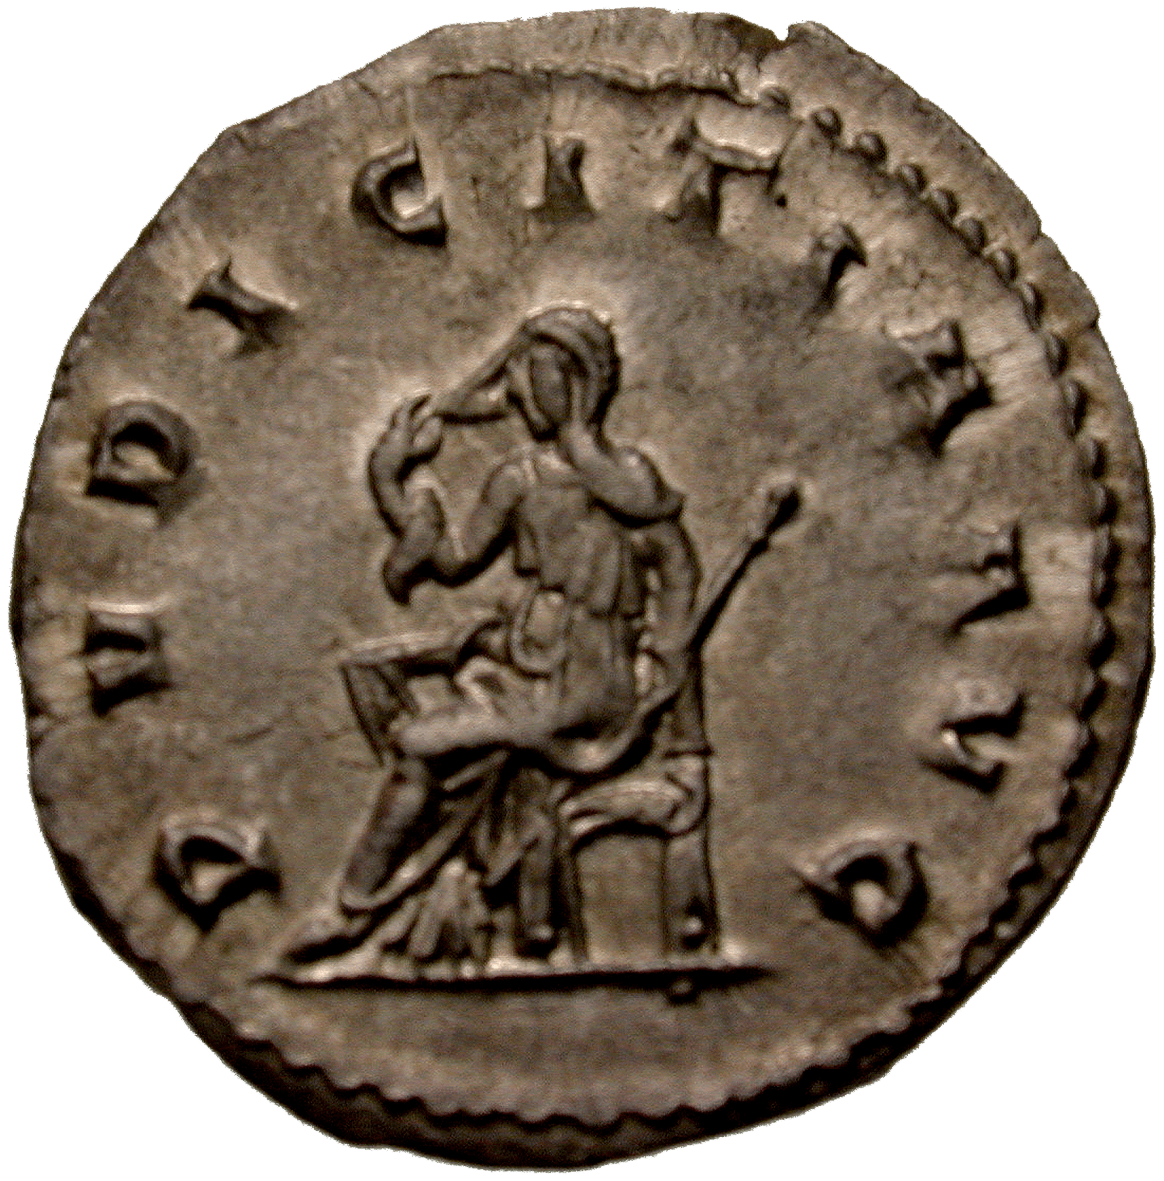 Roman Empire, Traianus Decius for his Wife Herennia Etruscilla, Antoninian (reverse)